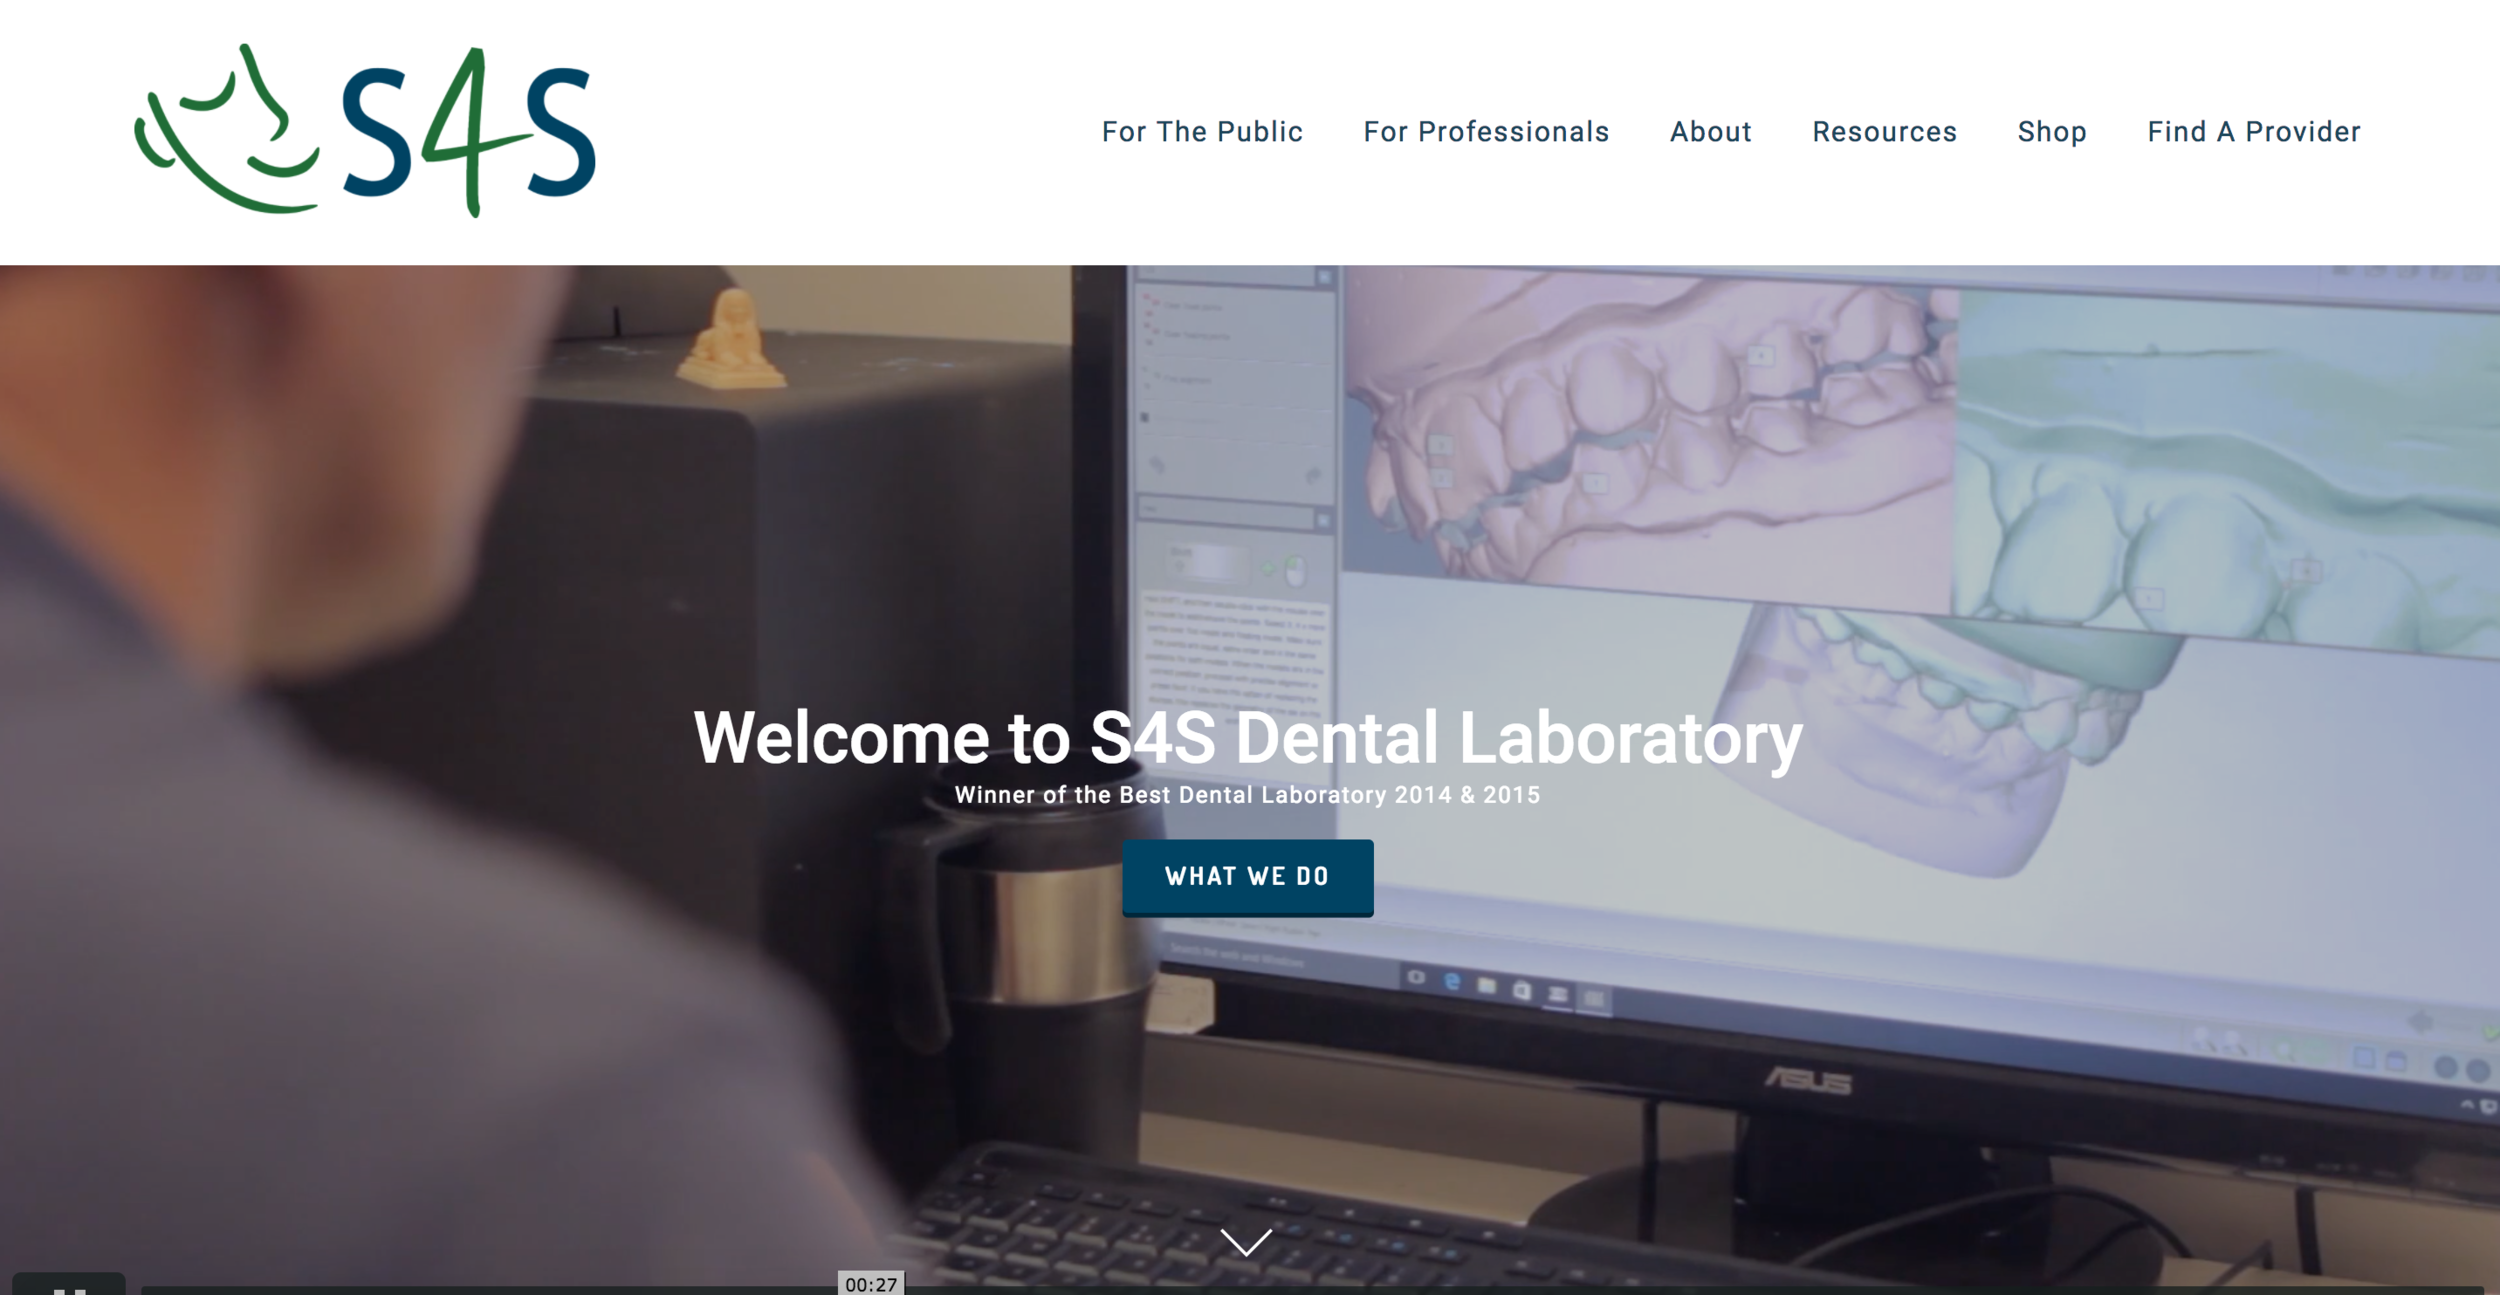 S4S Dental - An engaging video backdrop, online store, product examples, testimonial videos, responsive and linked to their active social media profiles. A great website to complement the best dental lab in the UK.www.s4sdental.com